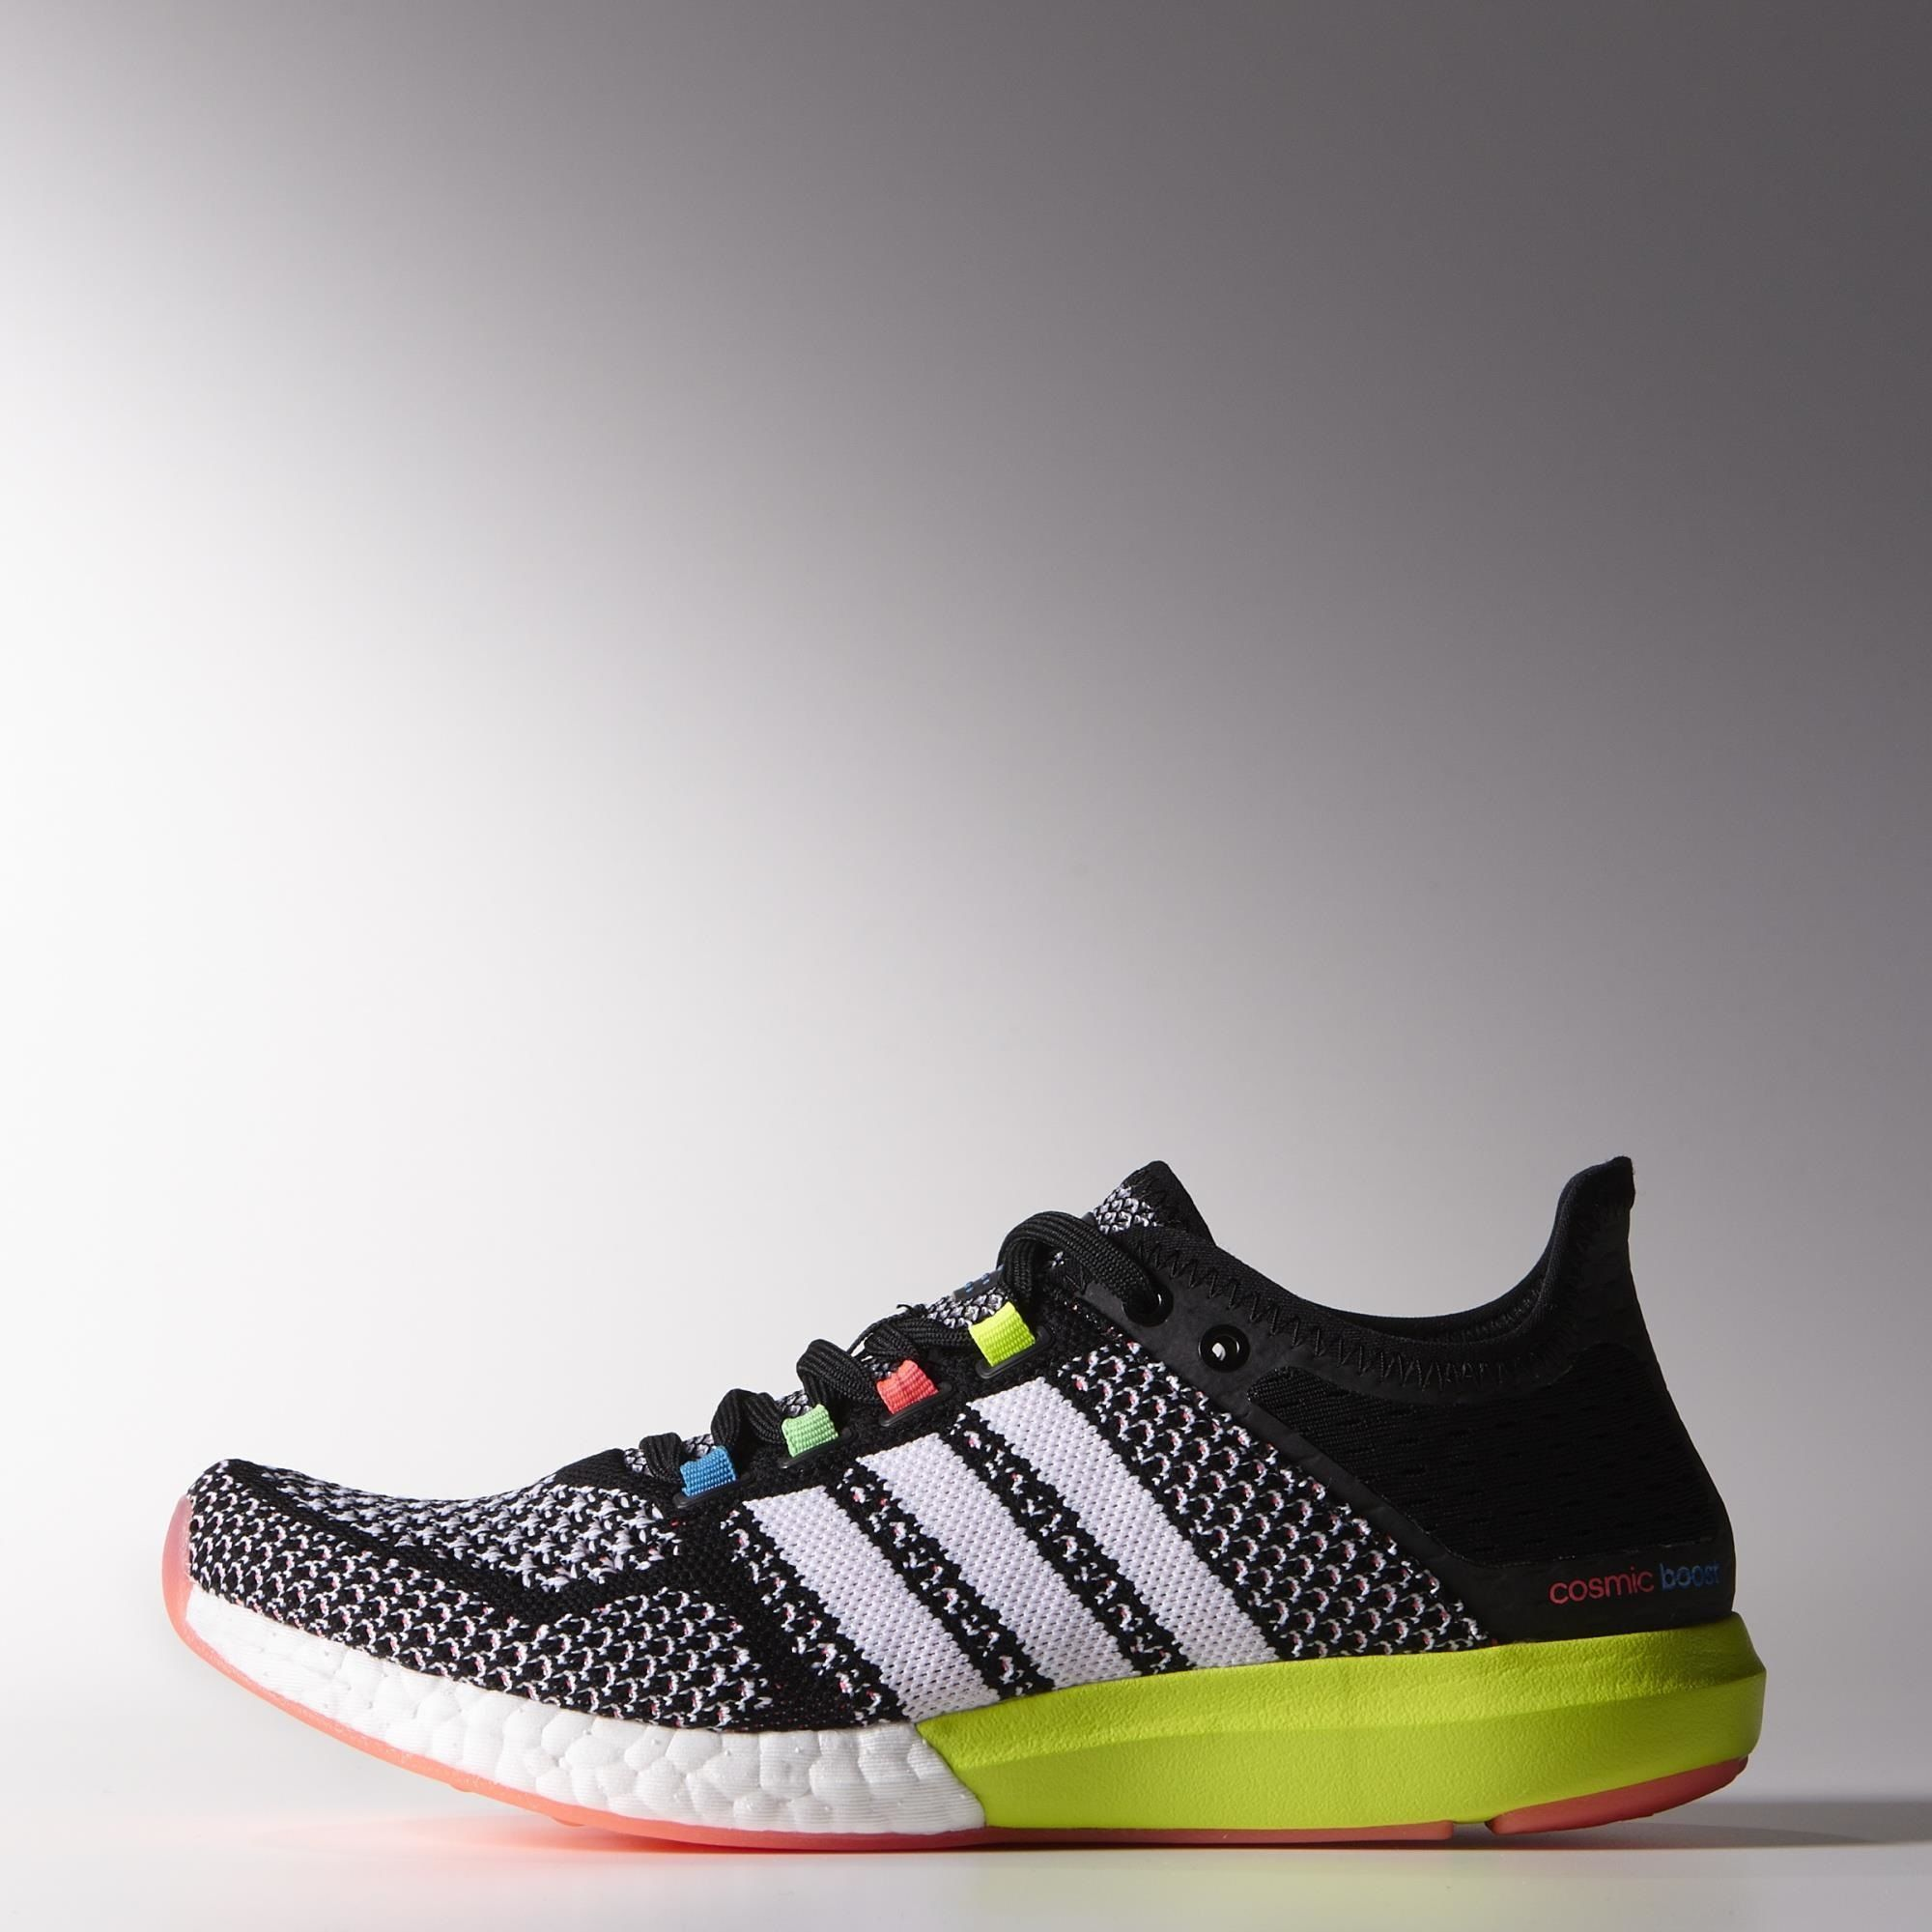 ... adidas climachill cosmic boost shoes core black running white solar blue  ...